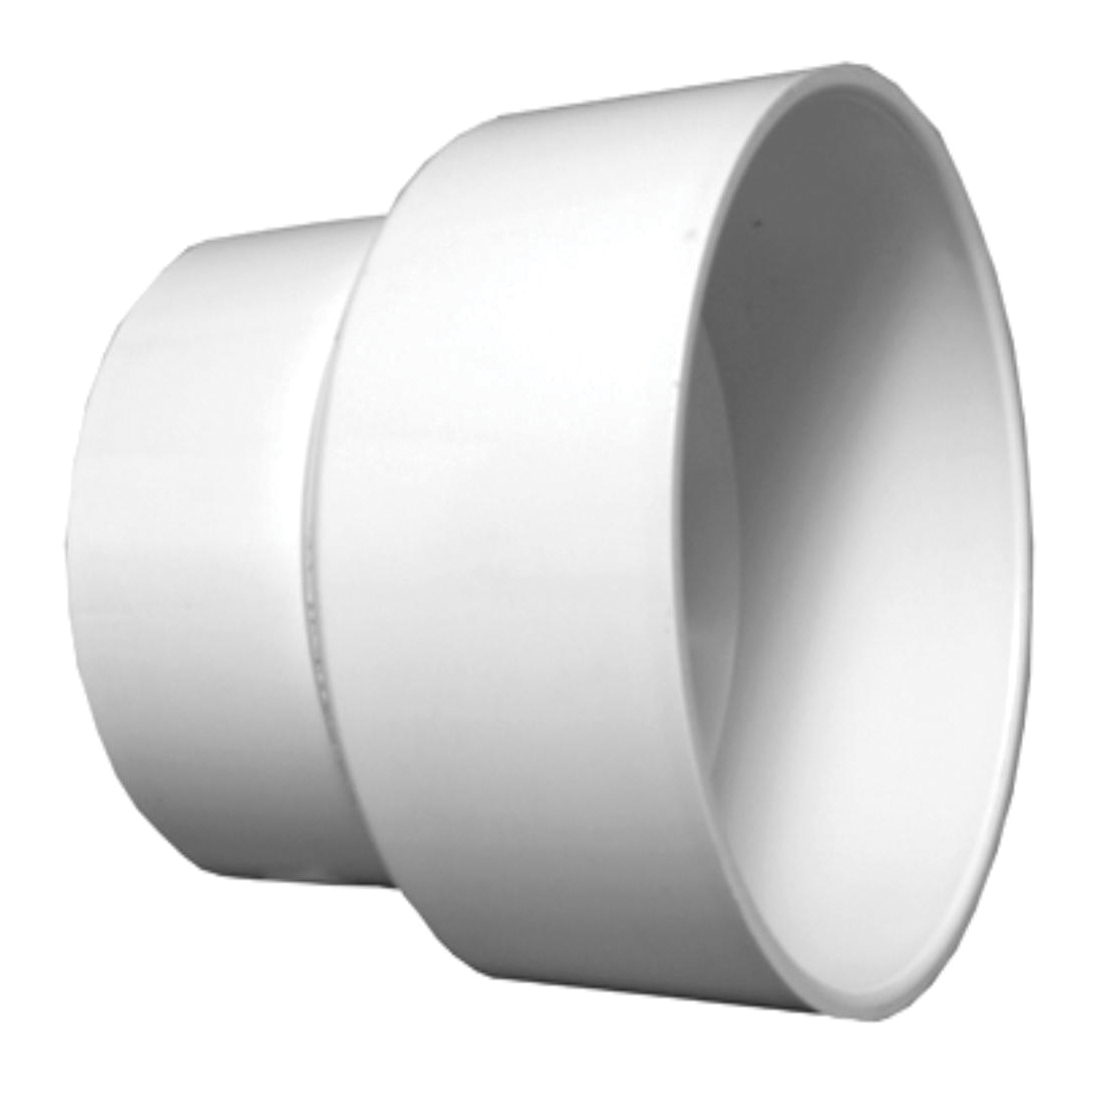 Charlotte PVC 00102 1800 Pipe Increaser/Reducer, 4 x 6 in Nominal, Hub End Style, SCH 40/STD, PVC, Domestic